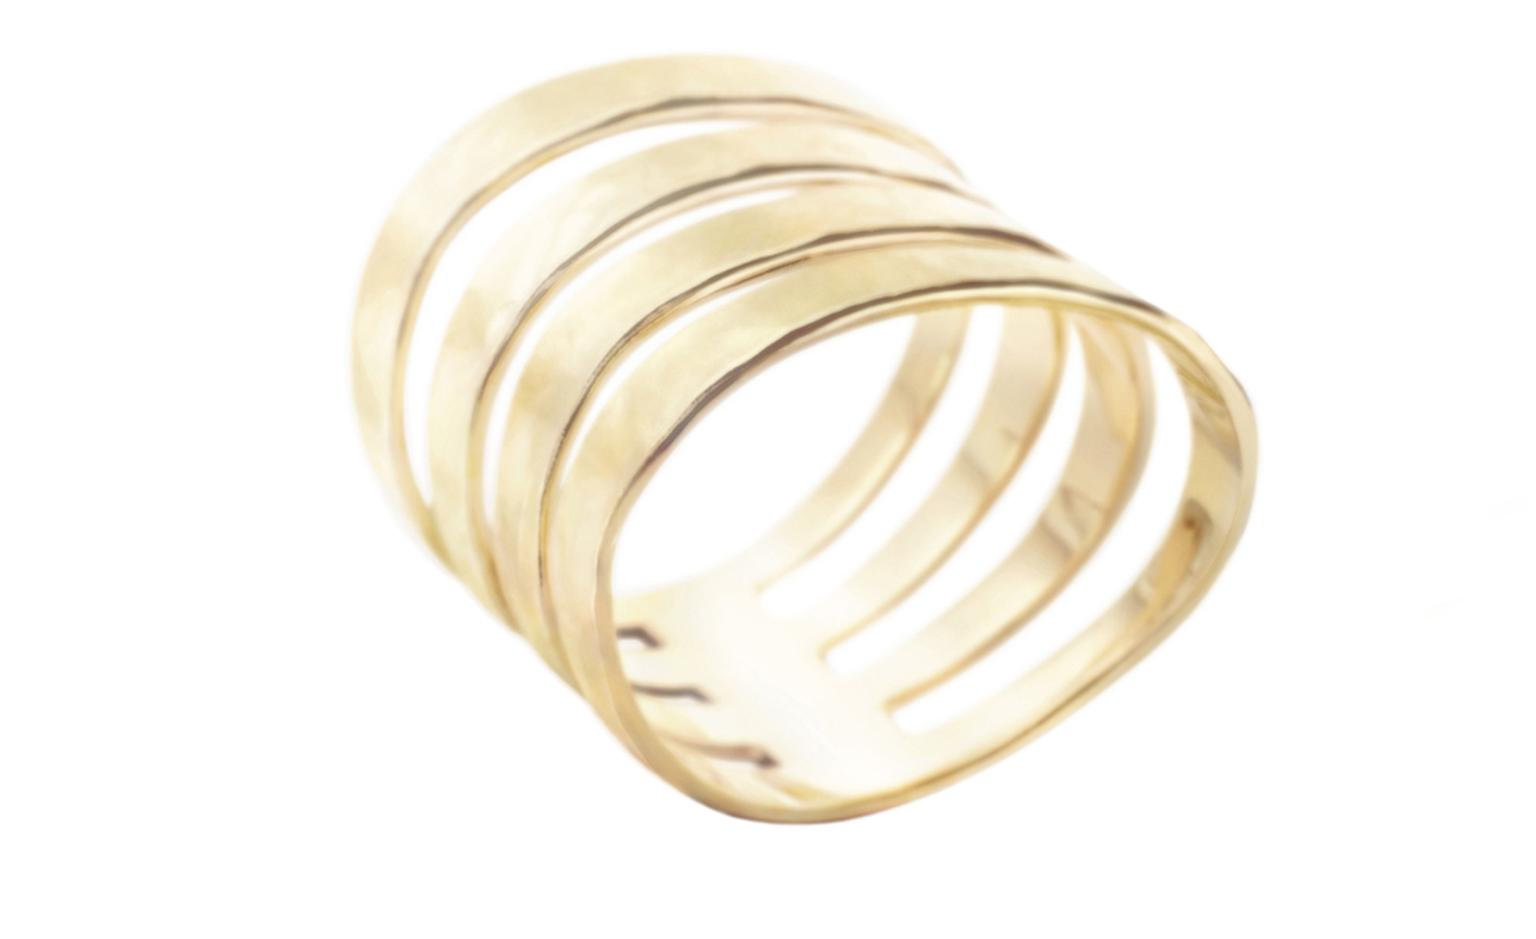 H STERN, COPAN Ring in yellow gold.